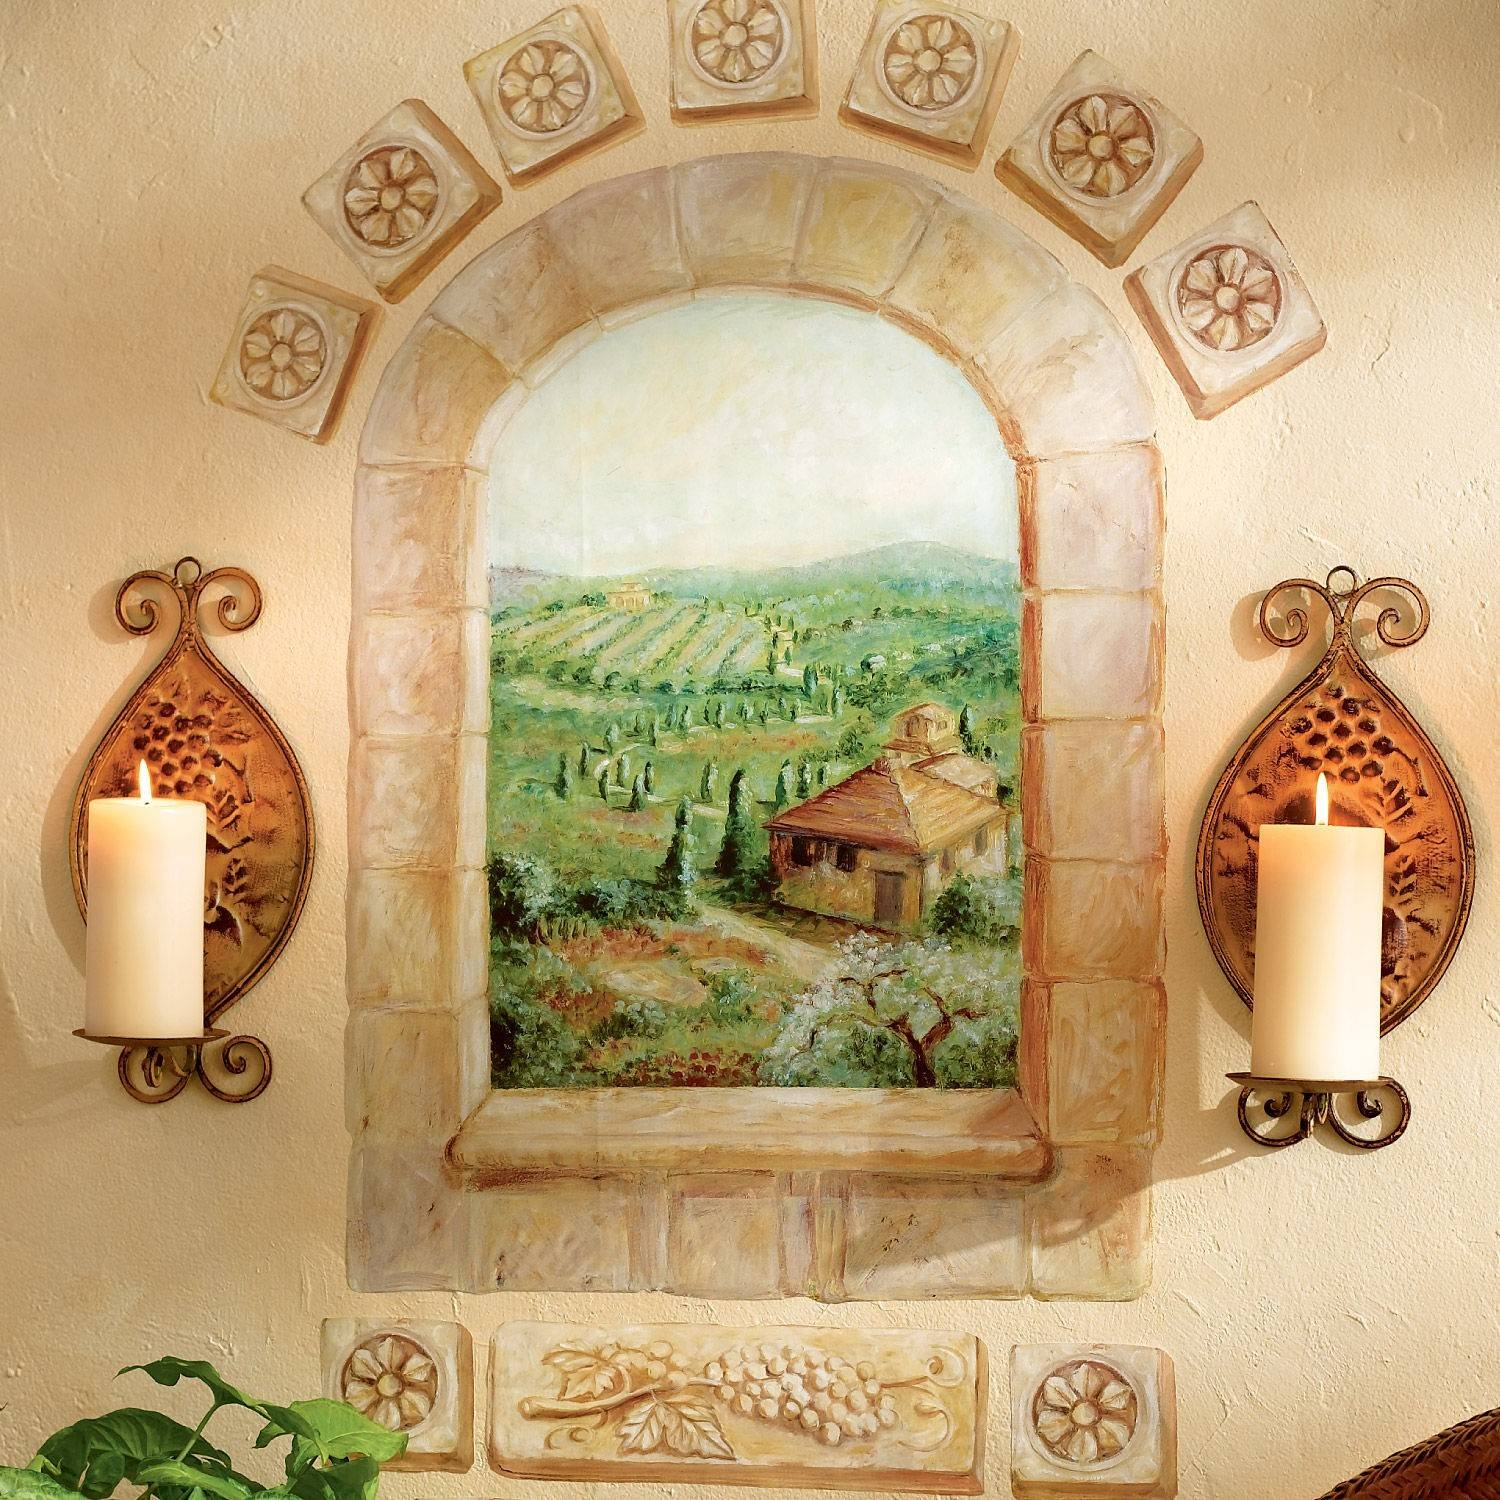 Tuscan Bathroom Wall Art | Bathroom Design Ideas 2017 Within Most Recently Released Tuscany Wall Art (View 20 of 20)